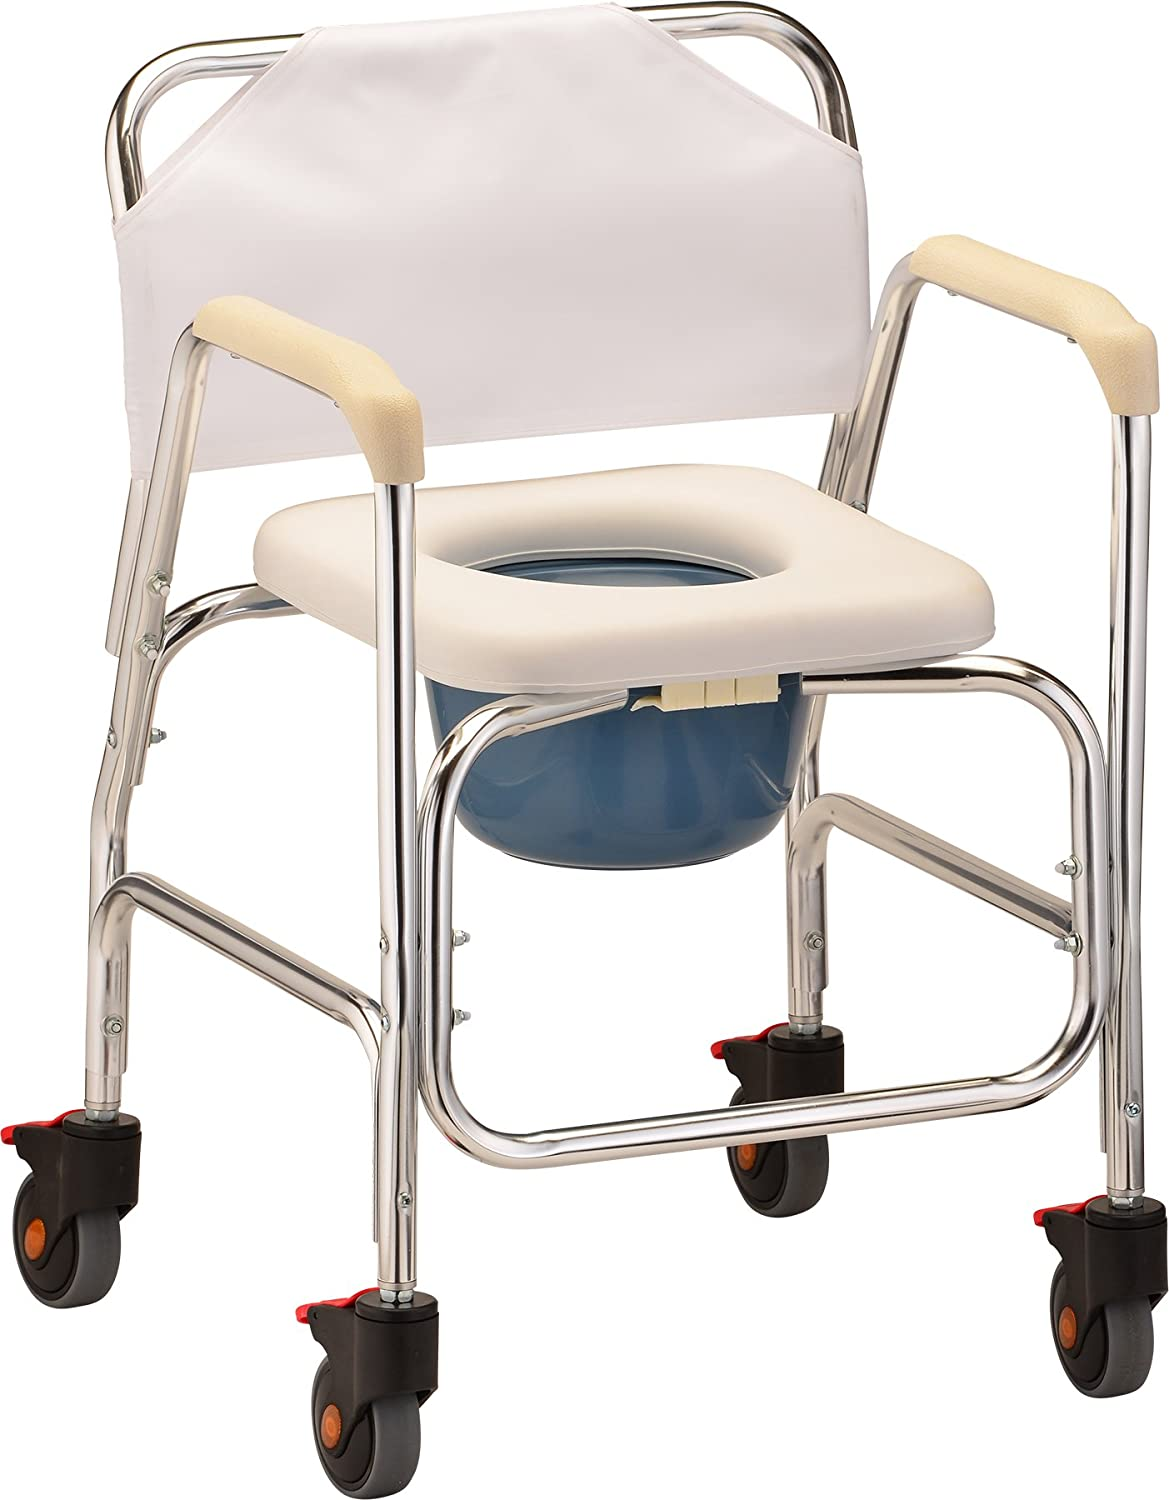 shower commode wheelchair safety benefits | - LIFE SUPPORT